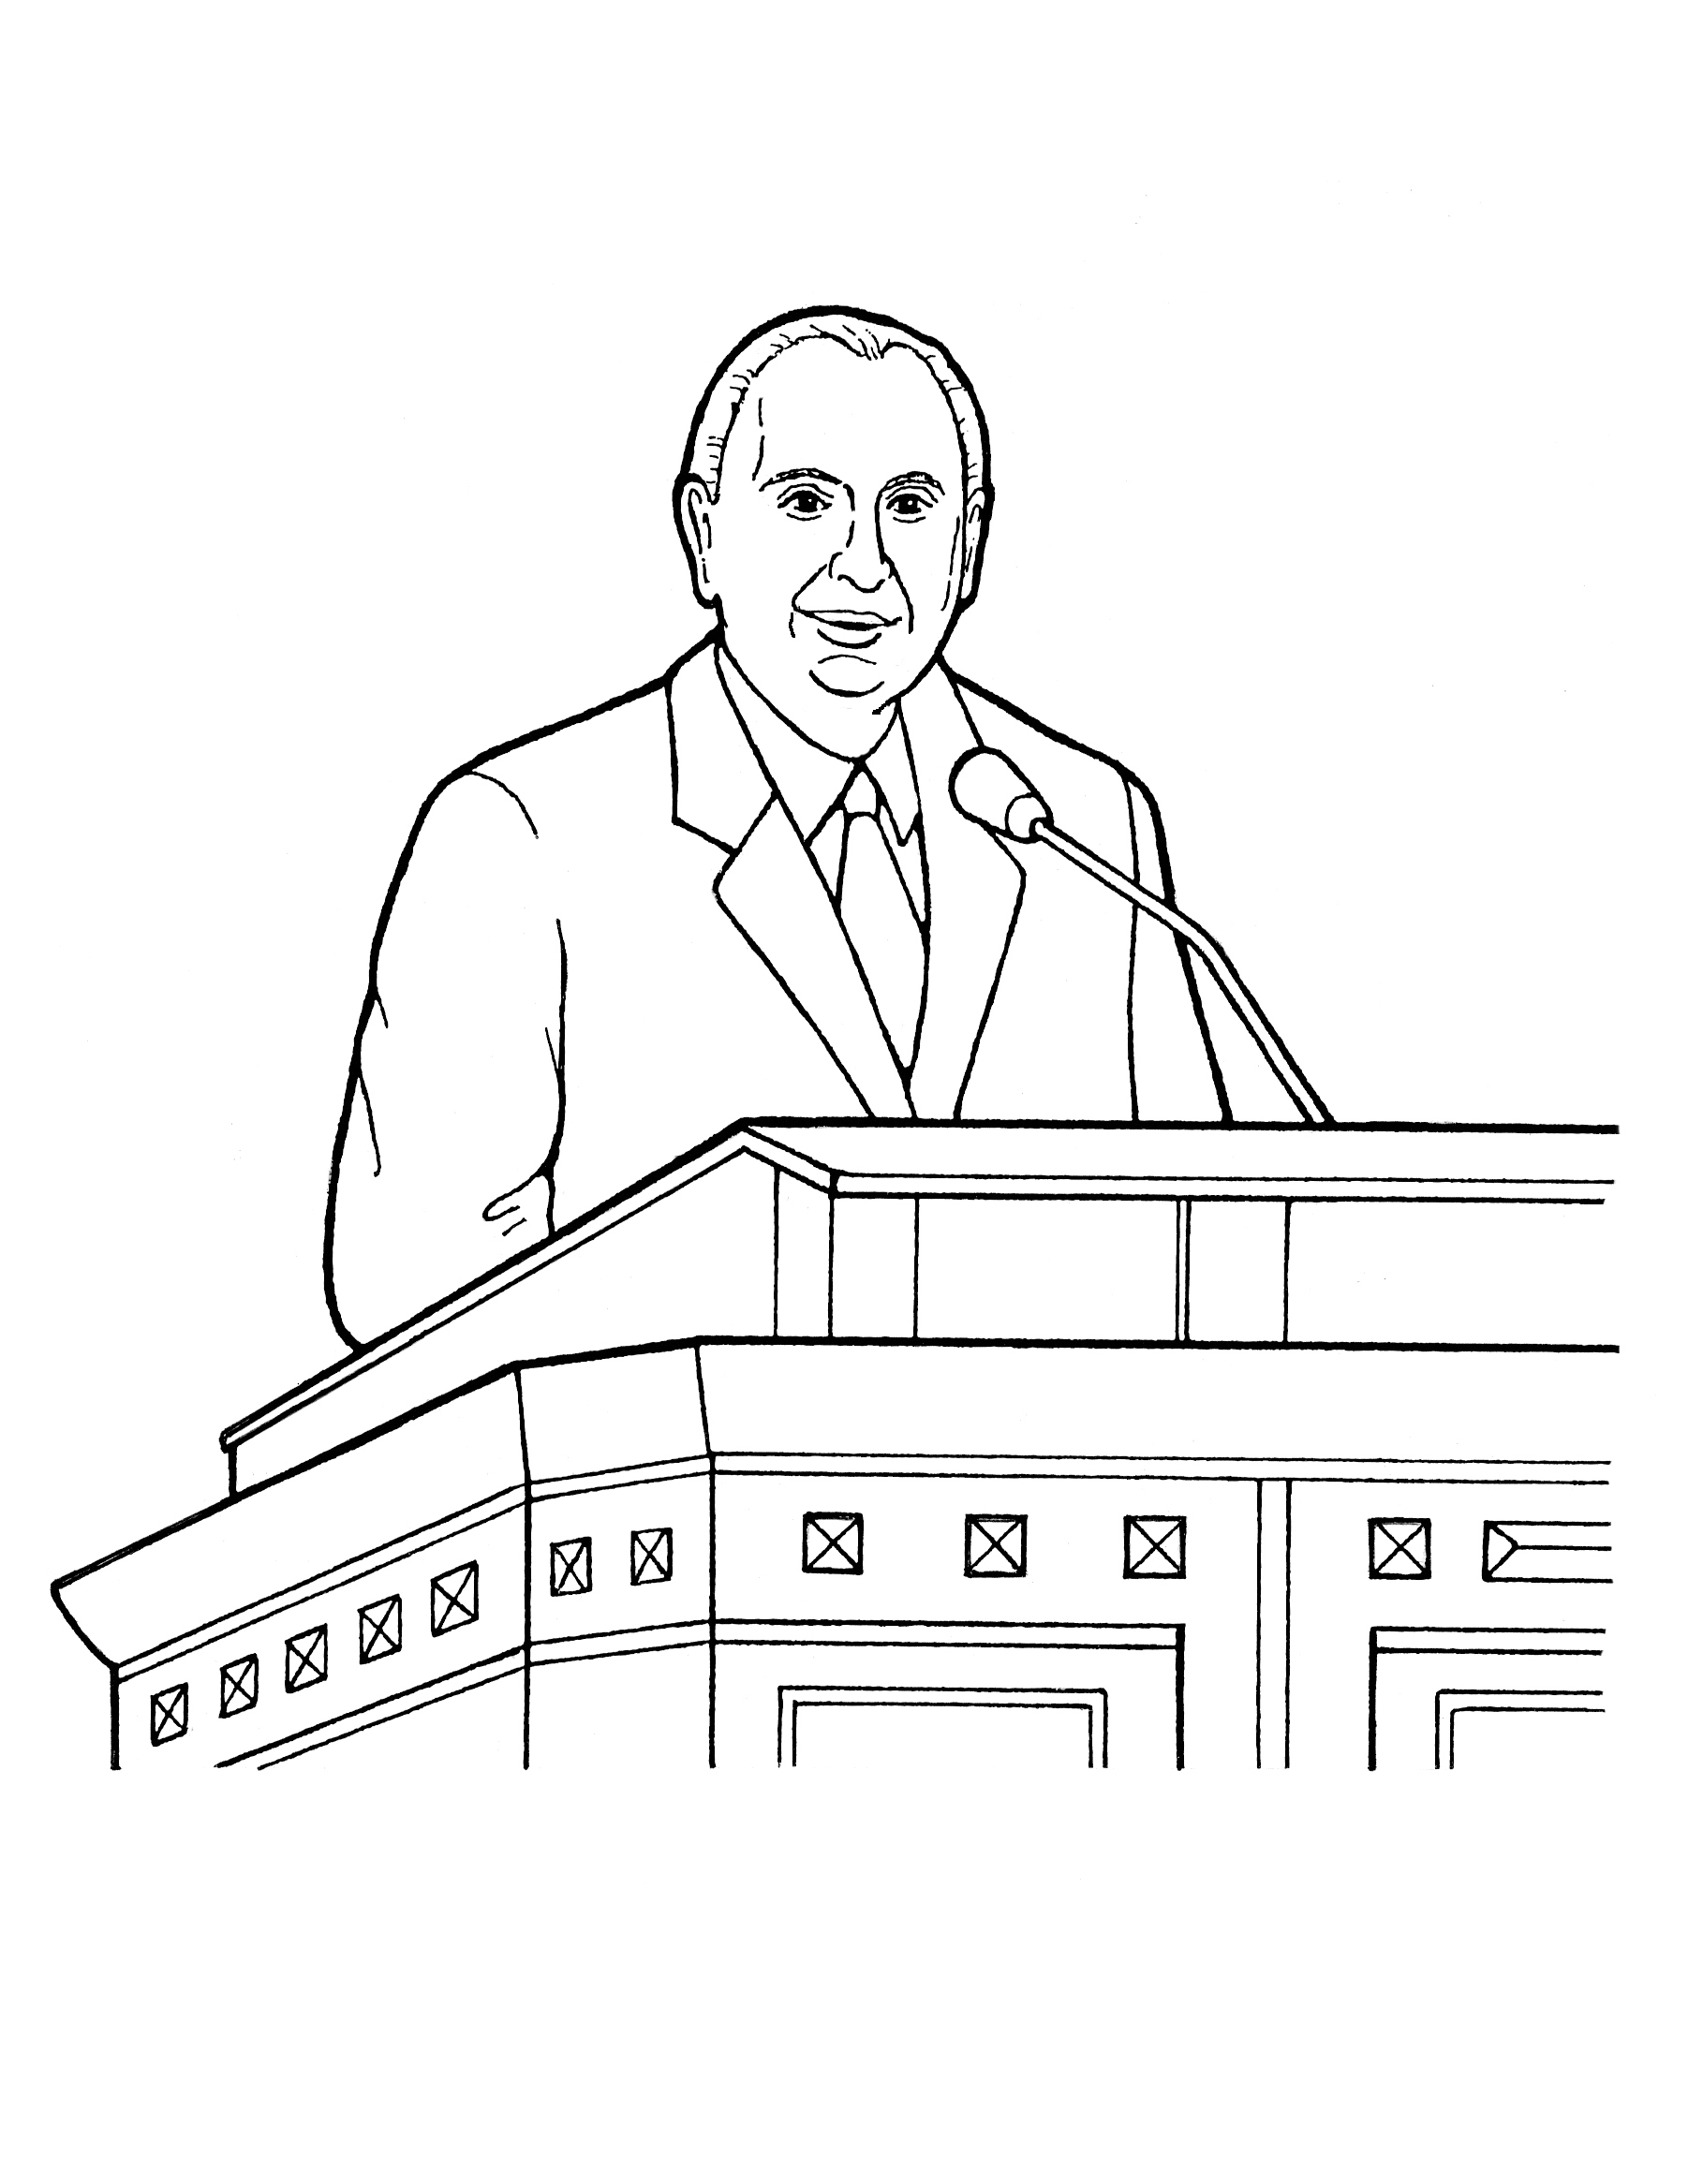 An illustration of Thomas S. Monson speaking at general conference.